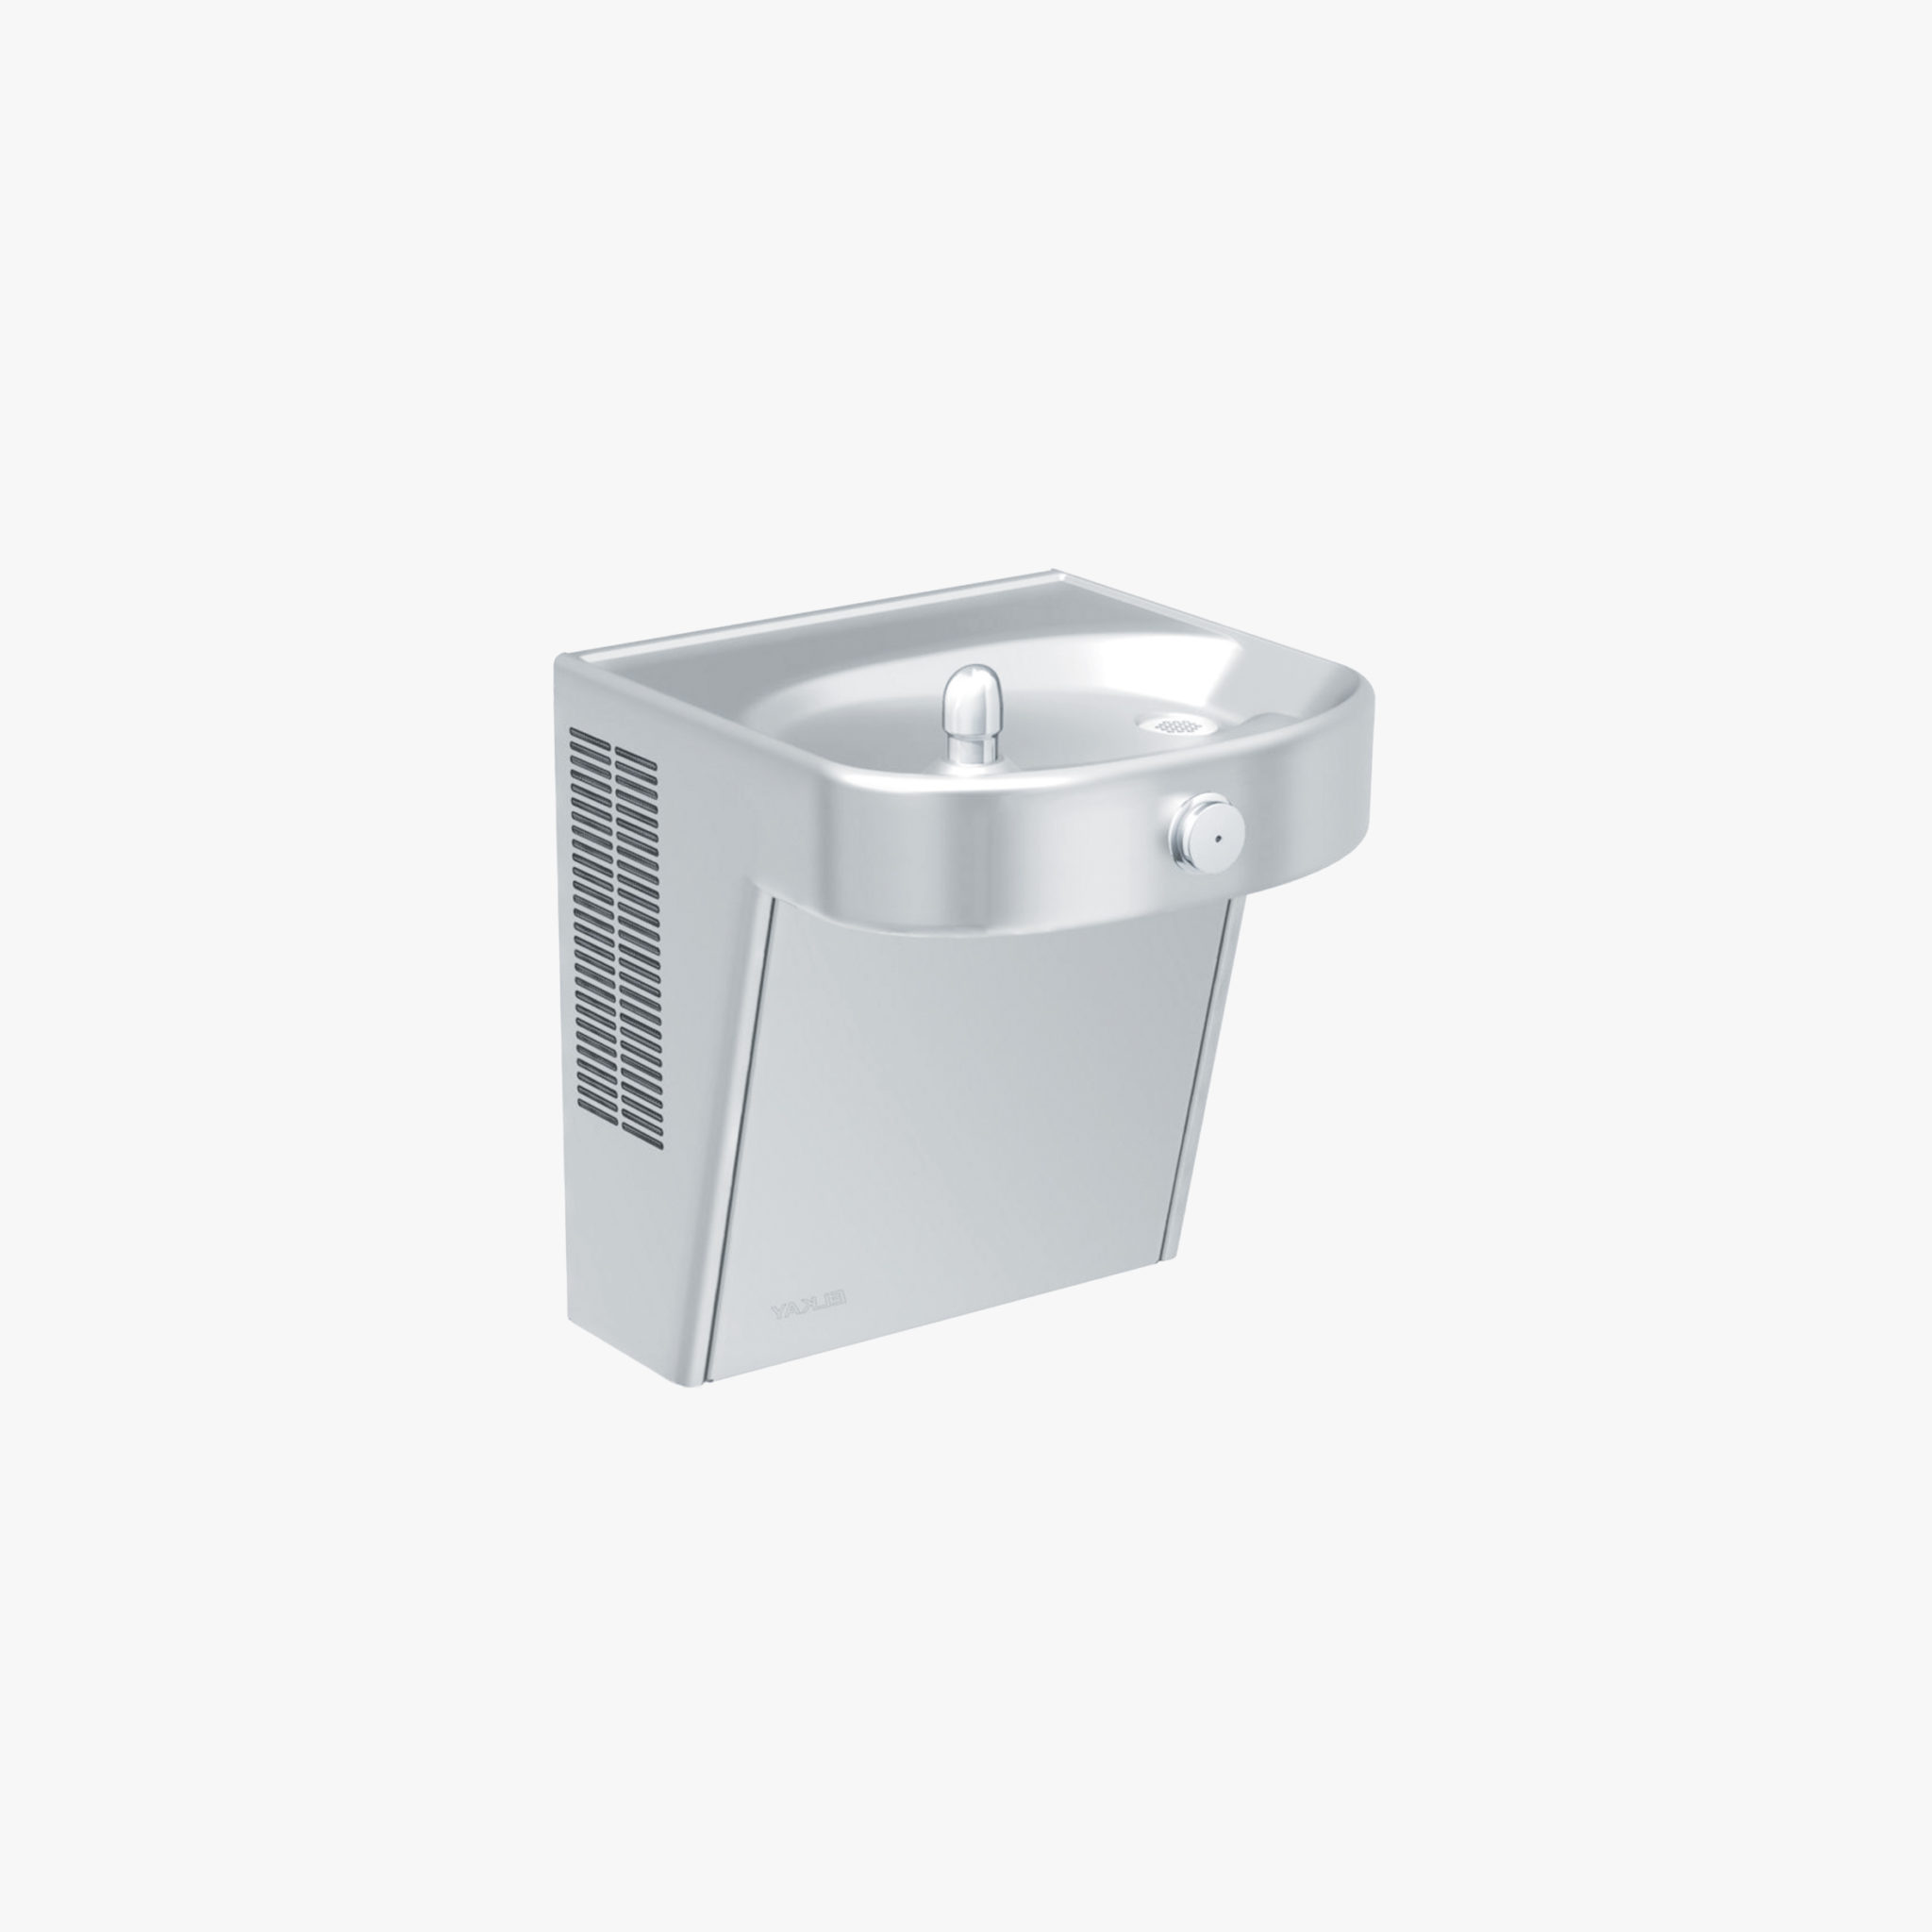 Elkay Vandal Resistant Xstream Wall Mounted Drinking Fountain